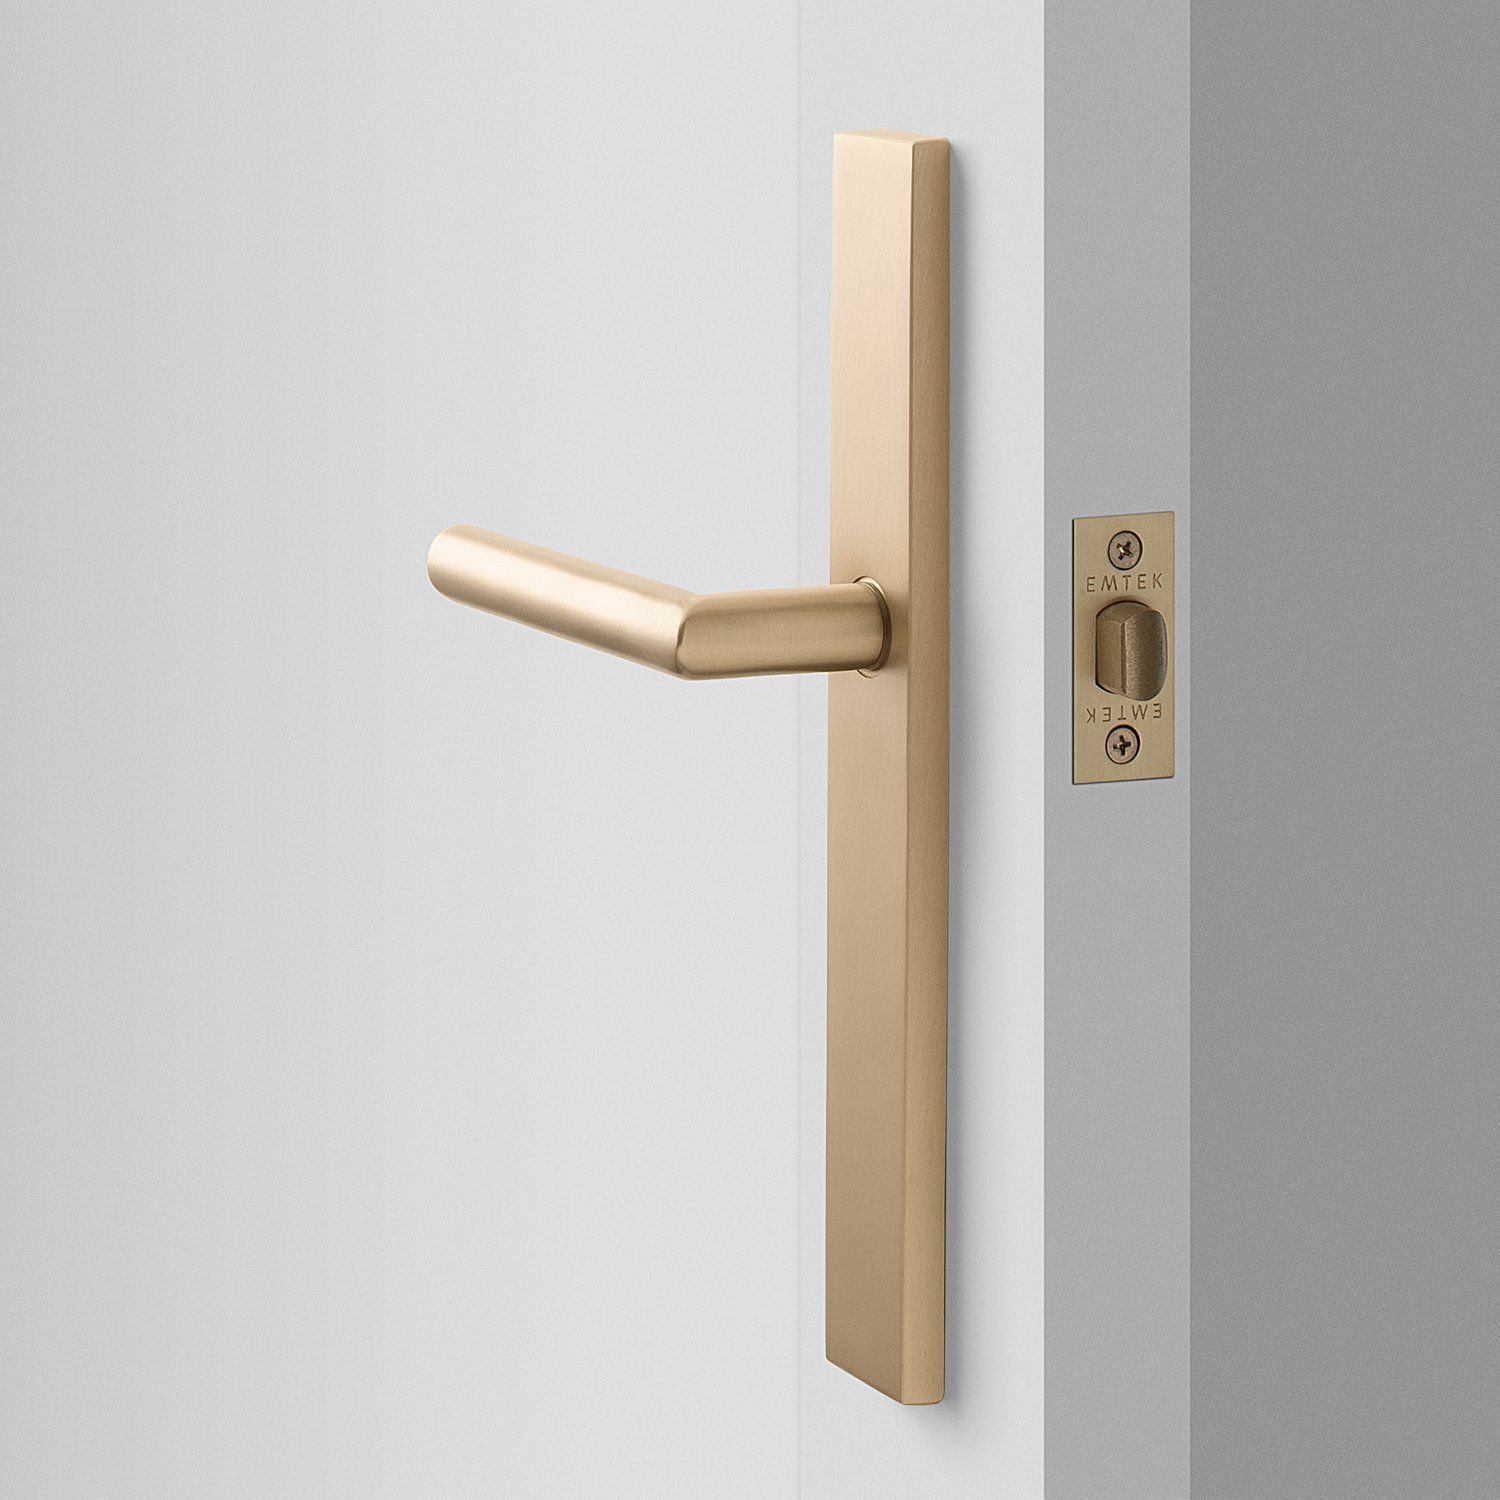 Inspire Yourself With A World Of Detail In Your Home See More On Pullcast Eu Hardwaredetails Door Handles Interior Door Hardware Interior Door Handles Modern